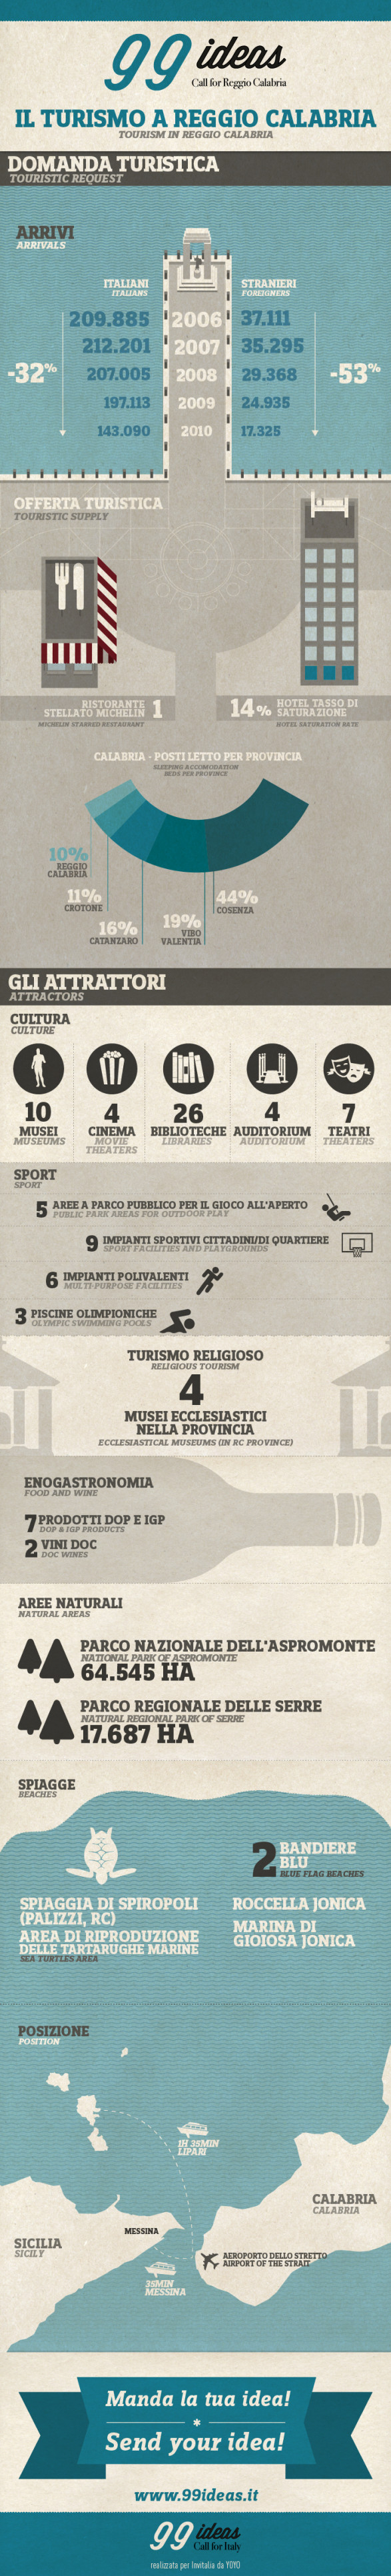 #99ideas infografica #4 Call for #ReggioCalabria